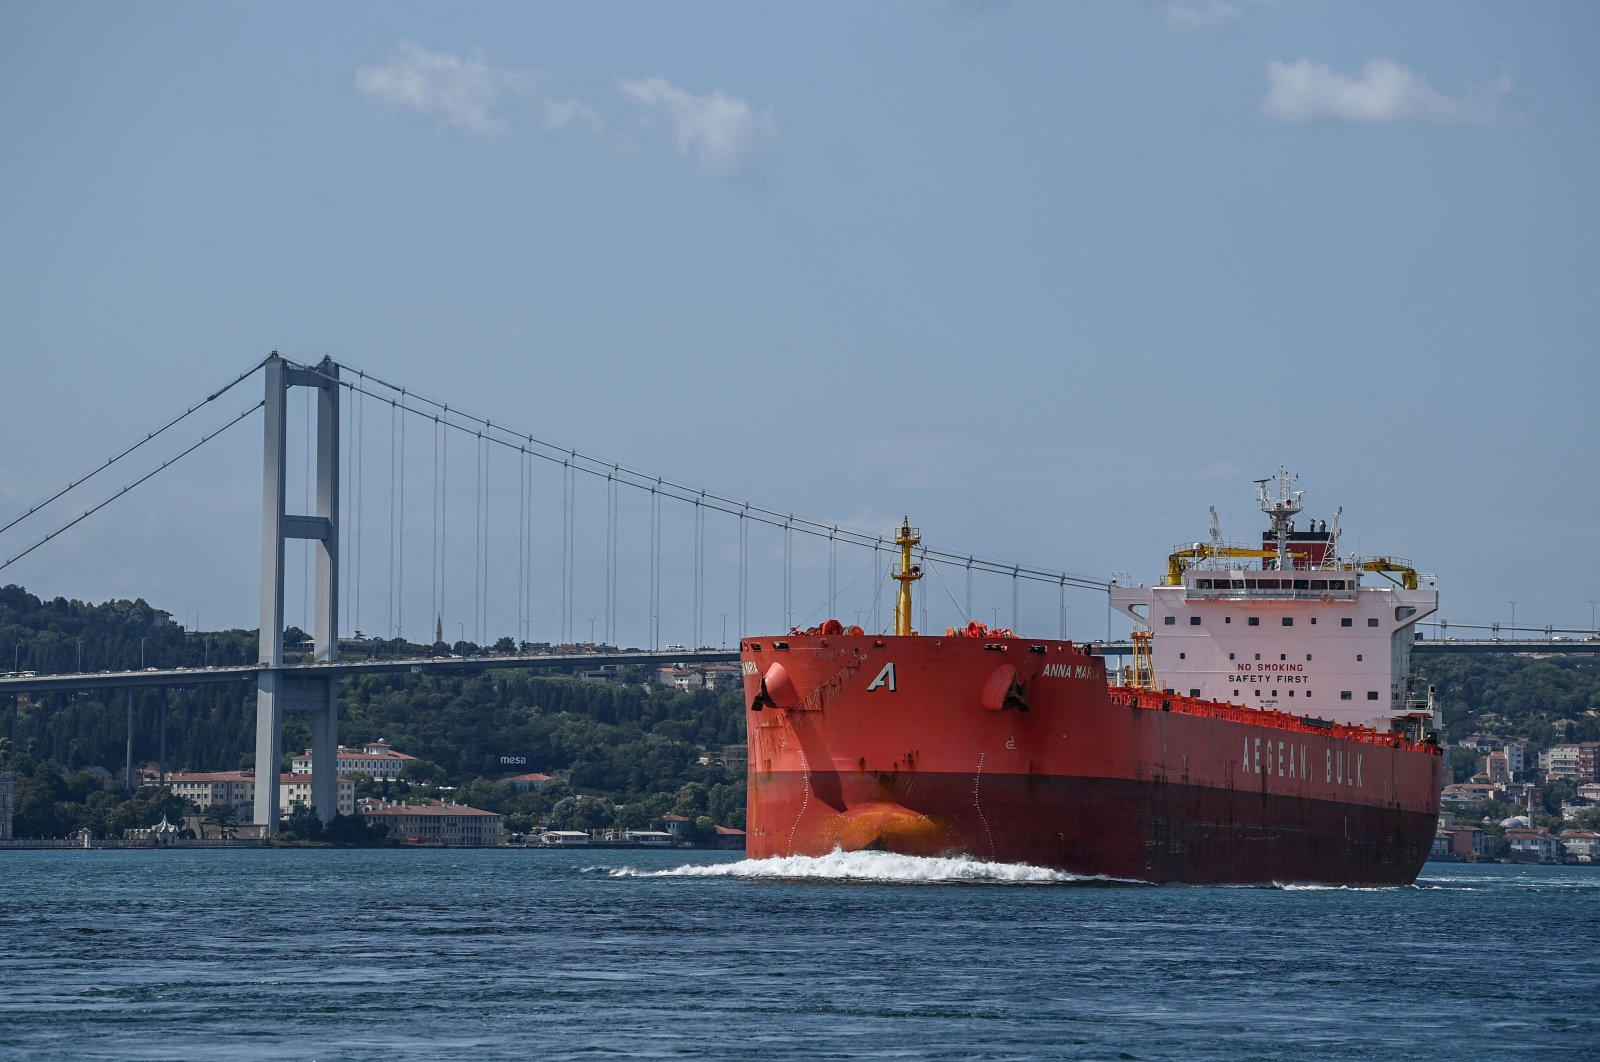 A commercial vessel sails under the July 15 Martyrs Bridge on the Bosporus strait, Istanbul, Turkey on July 23, 2021. (AFP Photo)